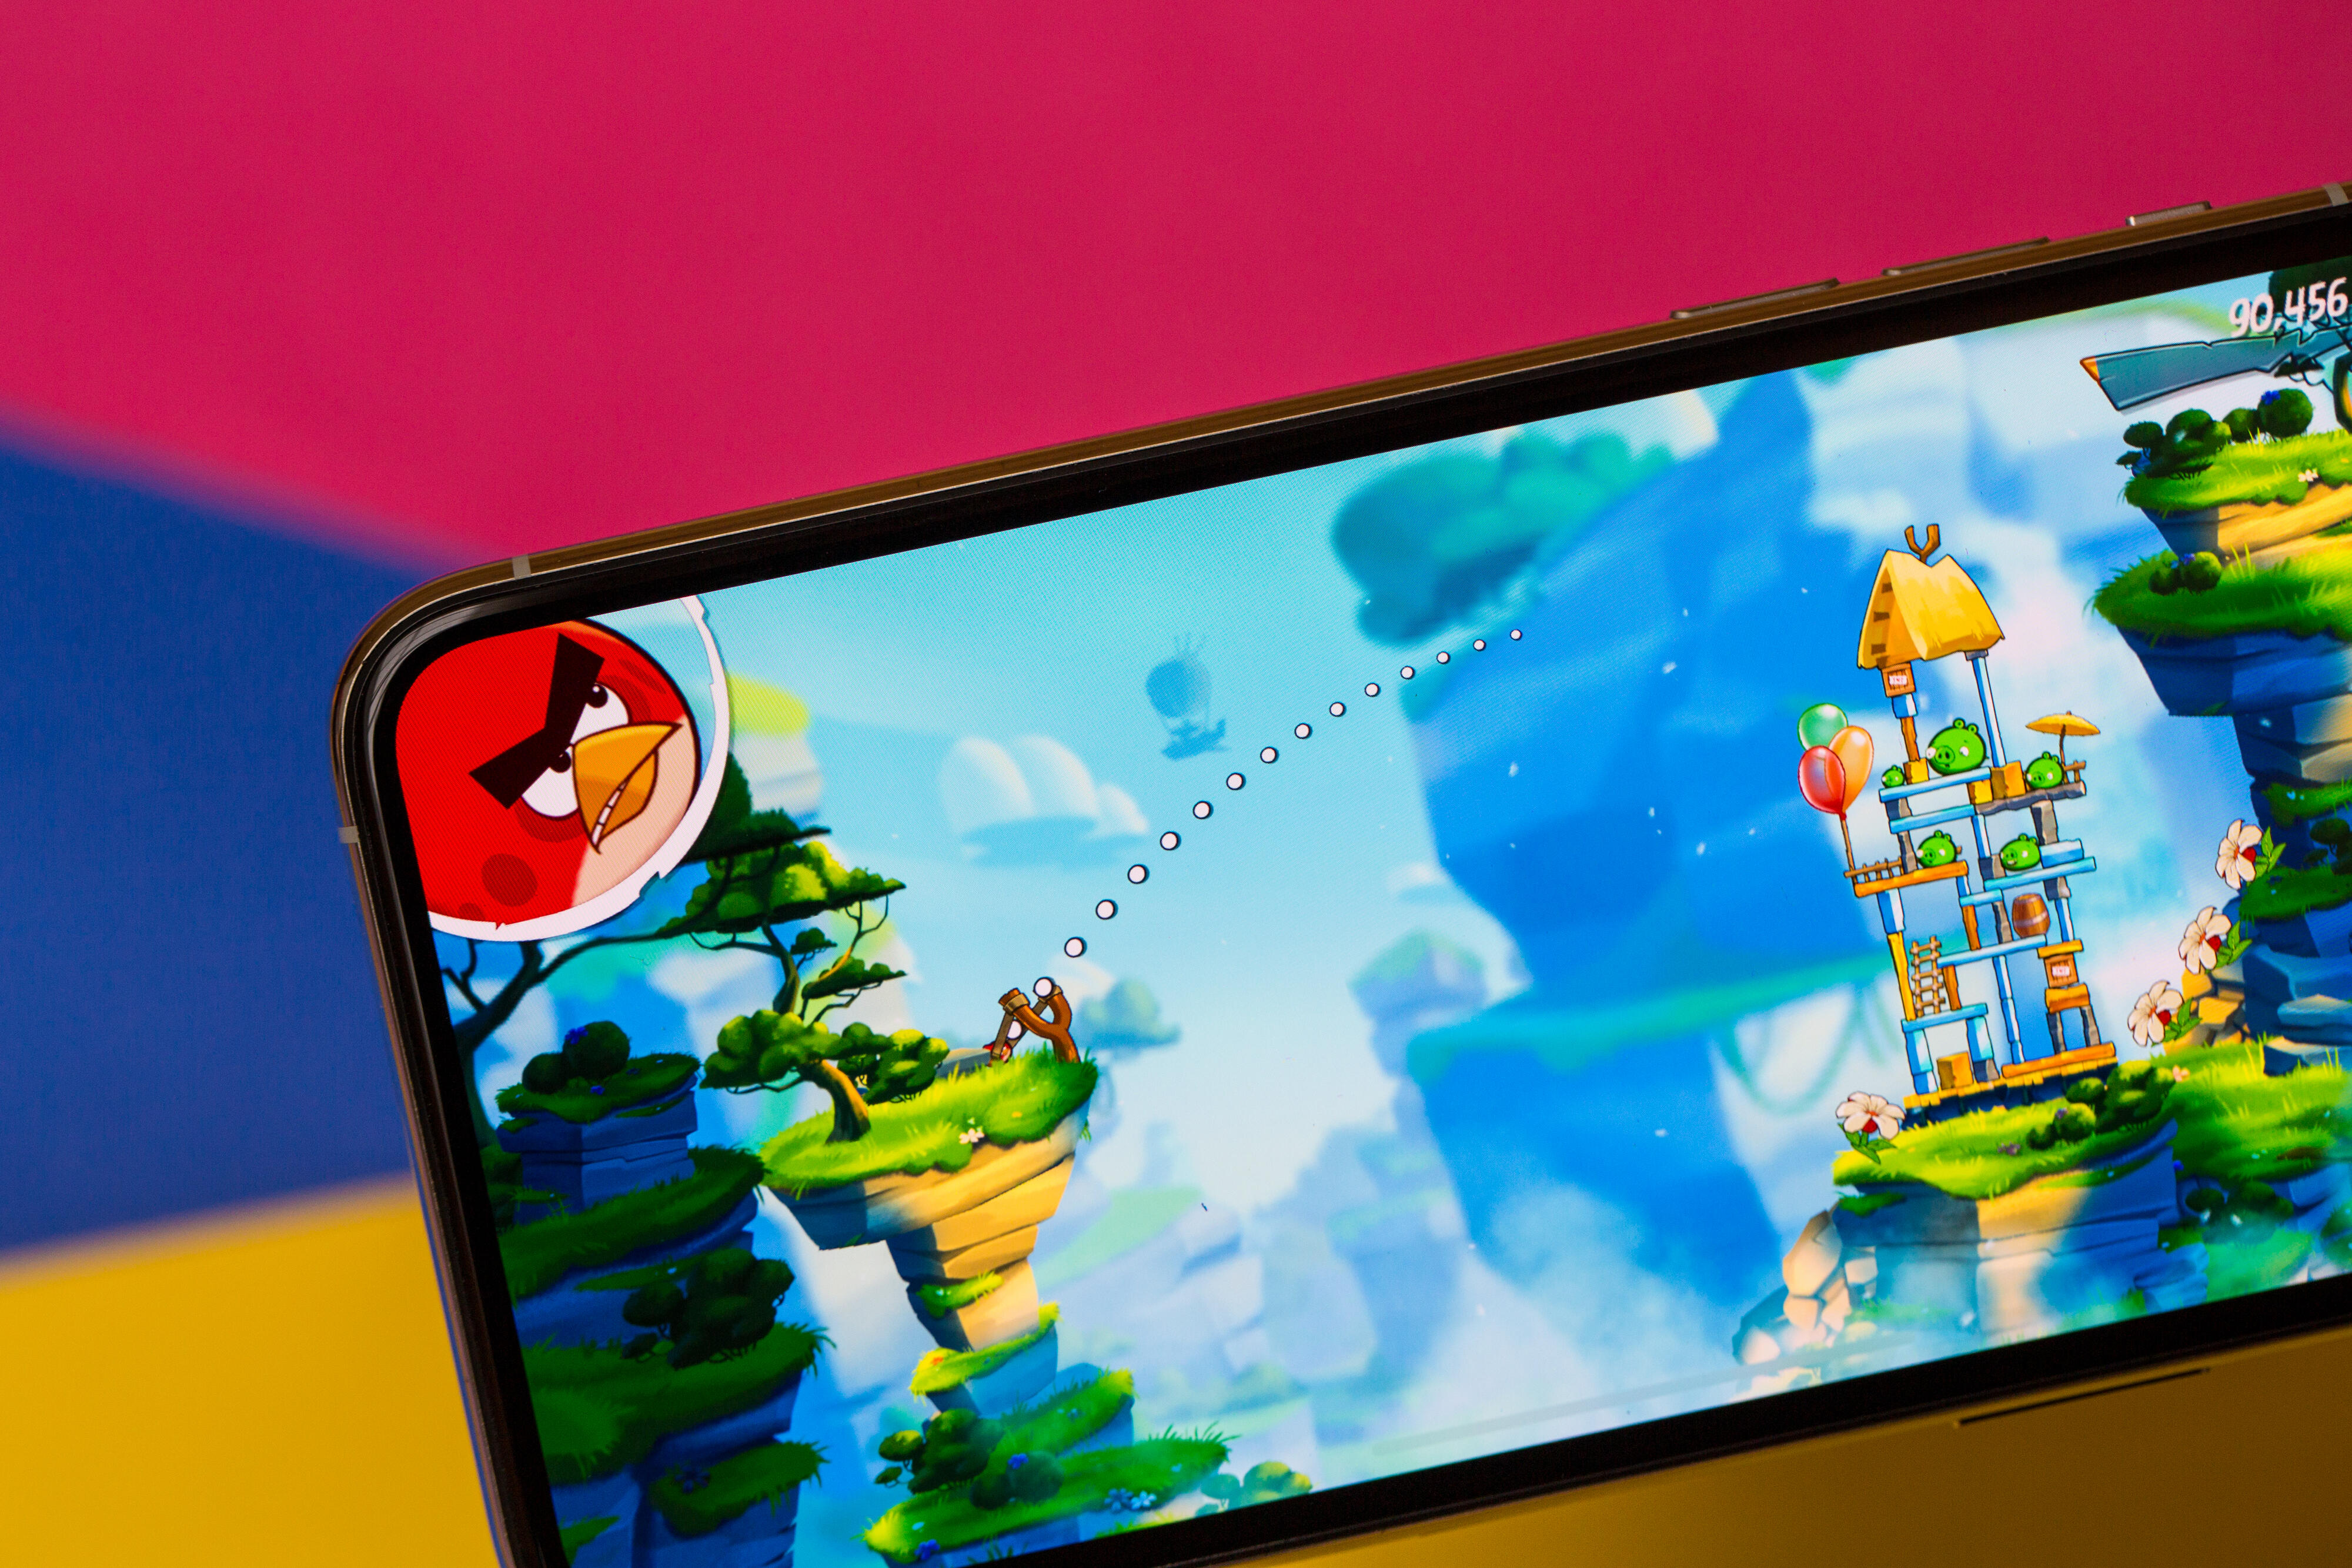 angrybirds-decade-review-2837